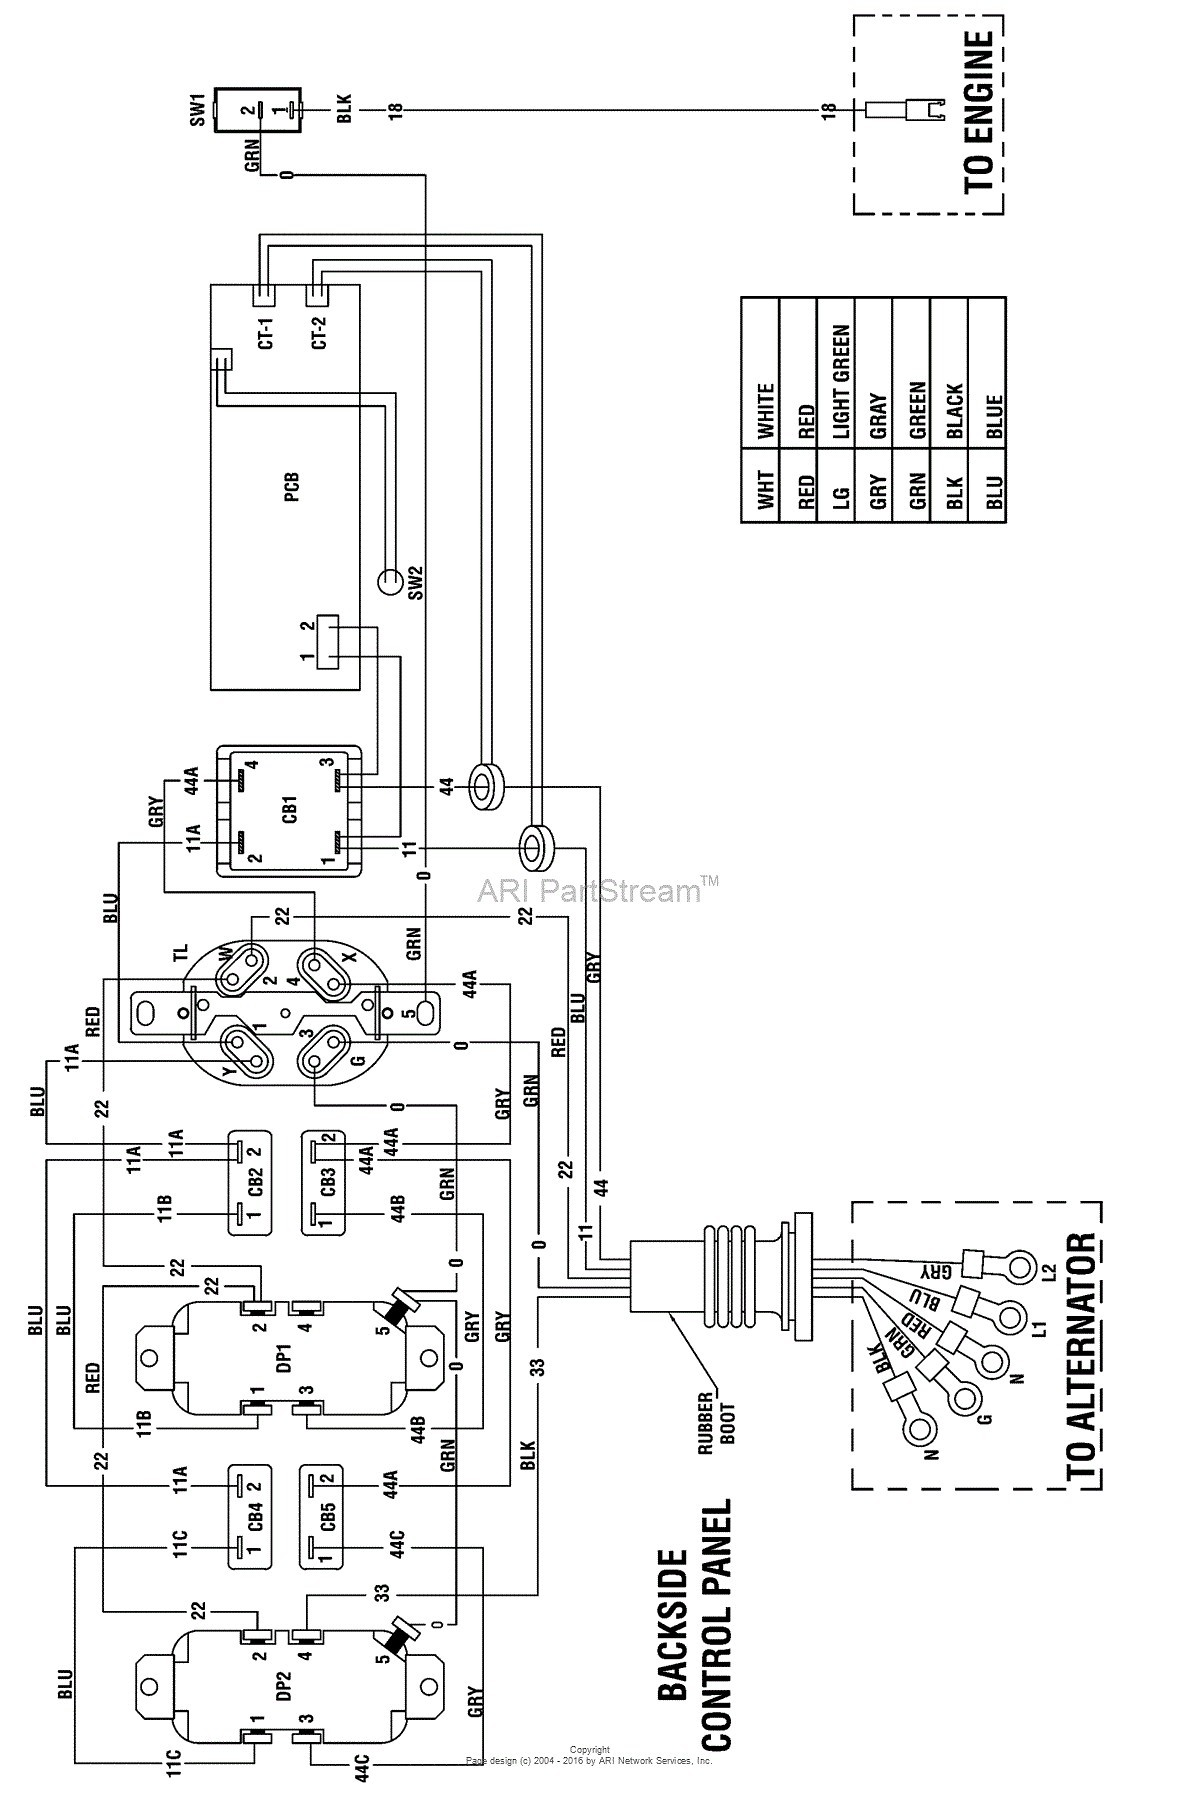 hight resolution of vanguard 18 hp engine wiring diagram wiring library wiring diagrams polaris ranger ev briggs and stratton ignition wiring